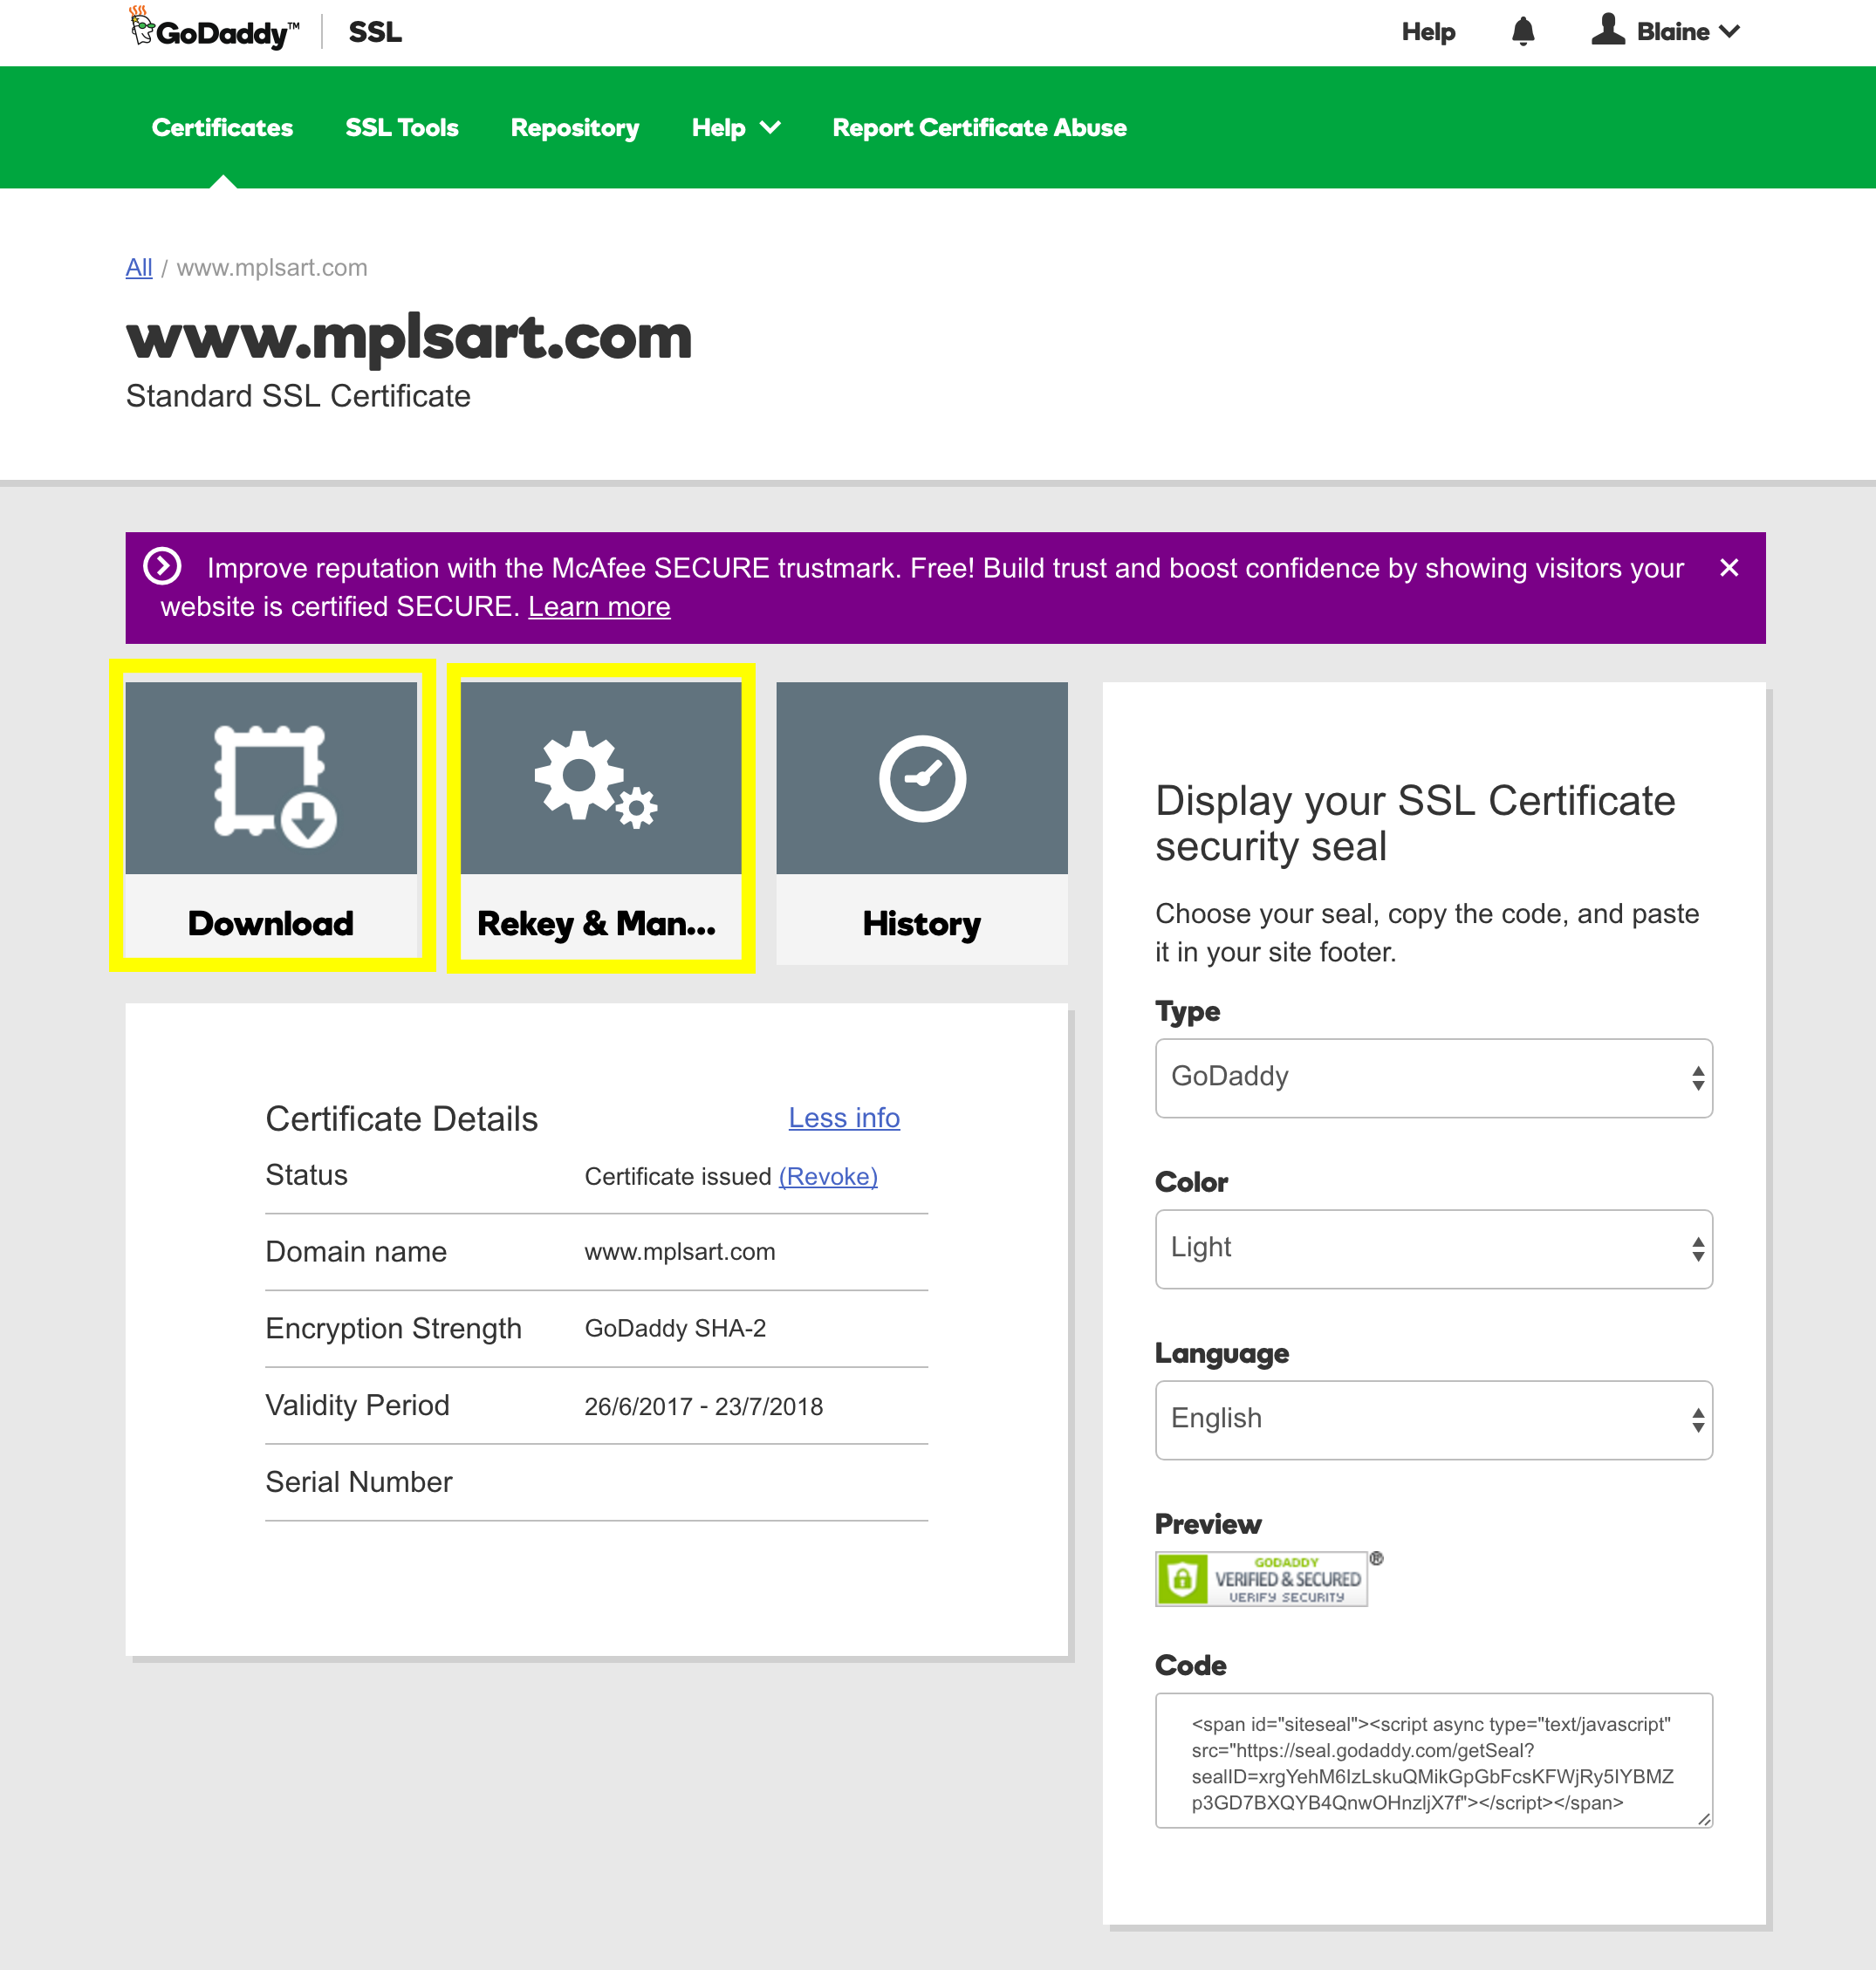 How To Get Appengine Godaddy Android Ssl Certs To Actually Work